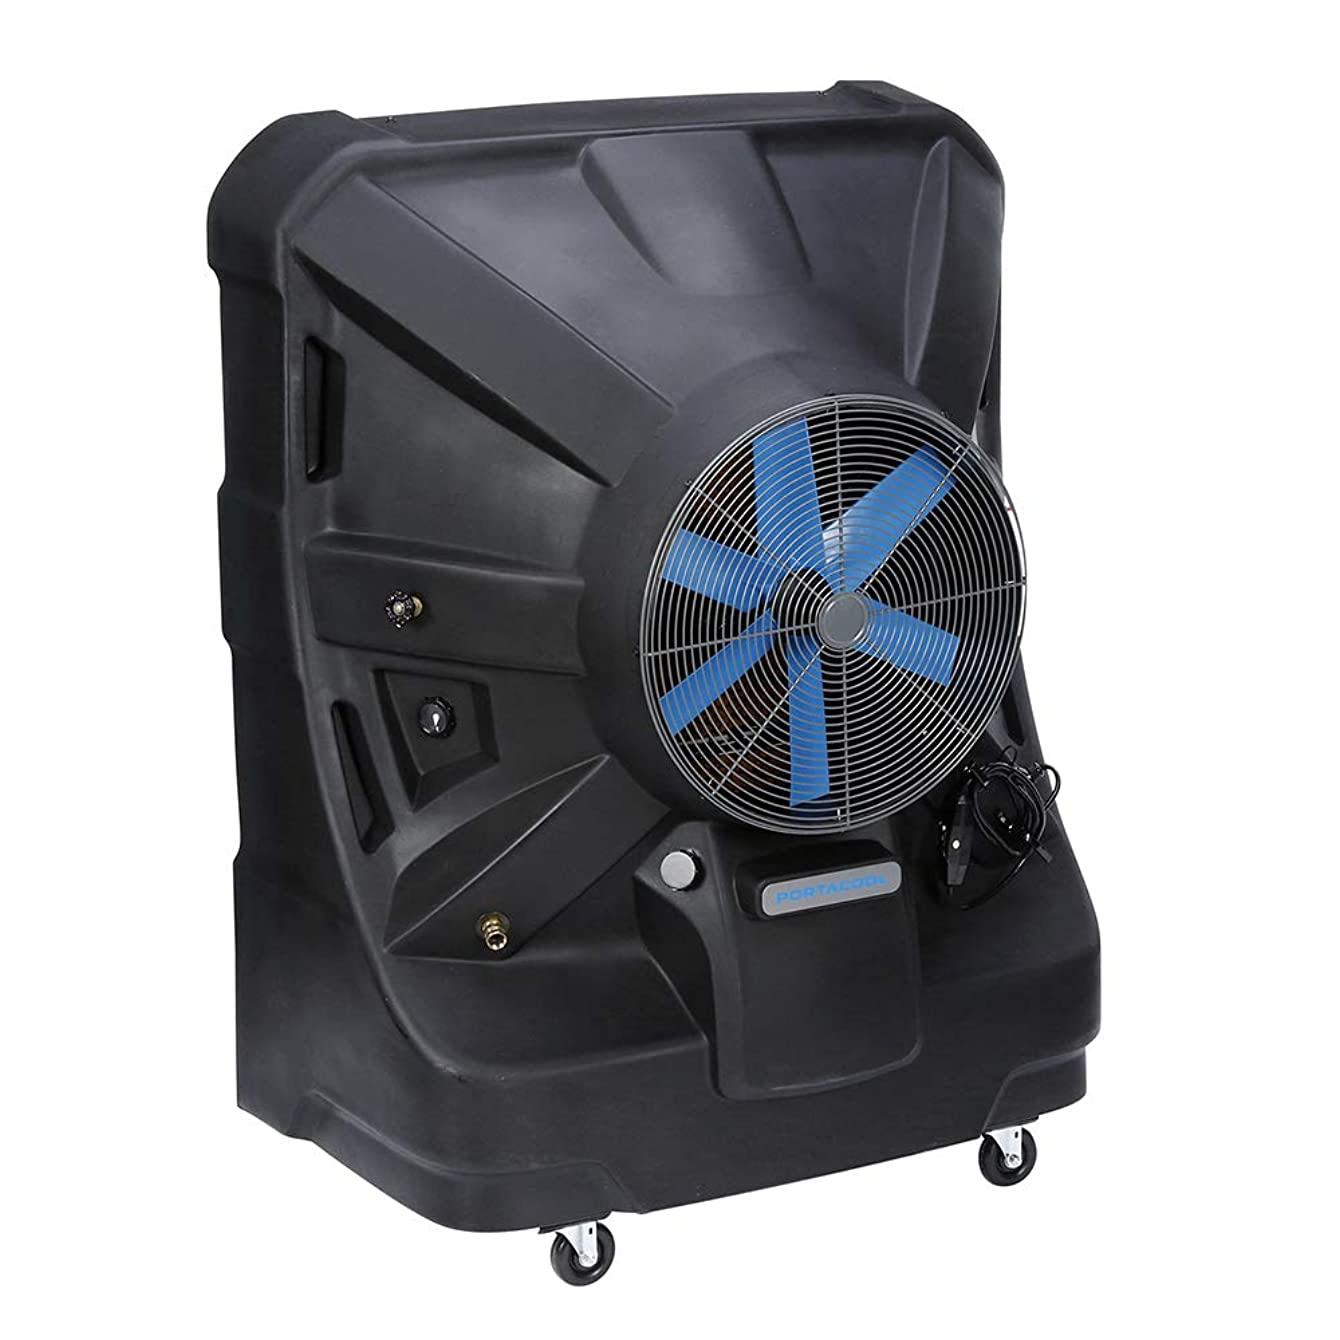 Portacool PACJS2501A1 Jetstream 250 Portable Evaporative Cooler